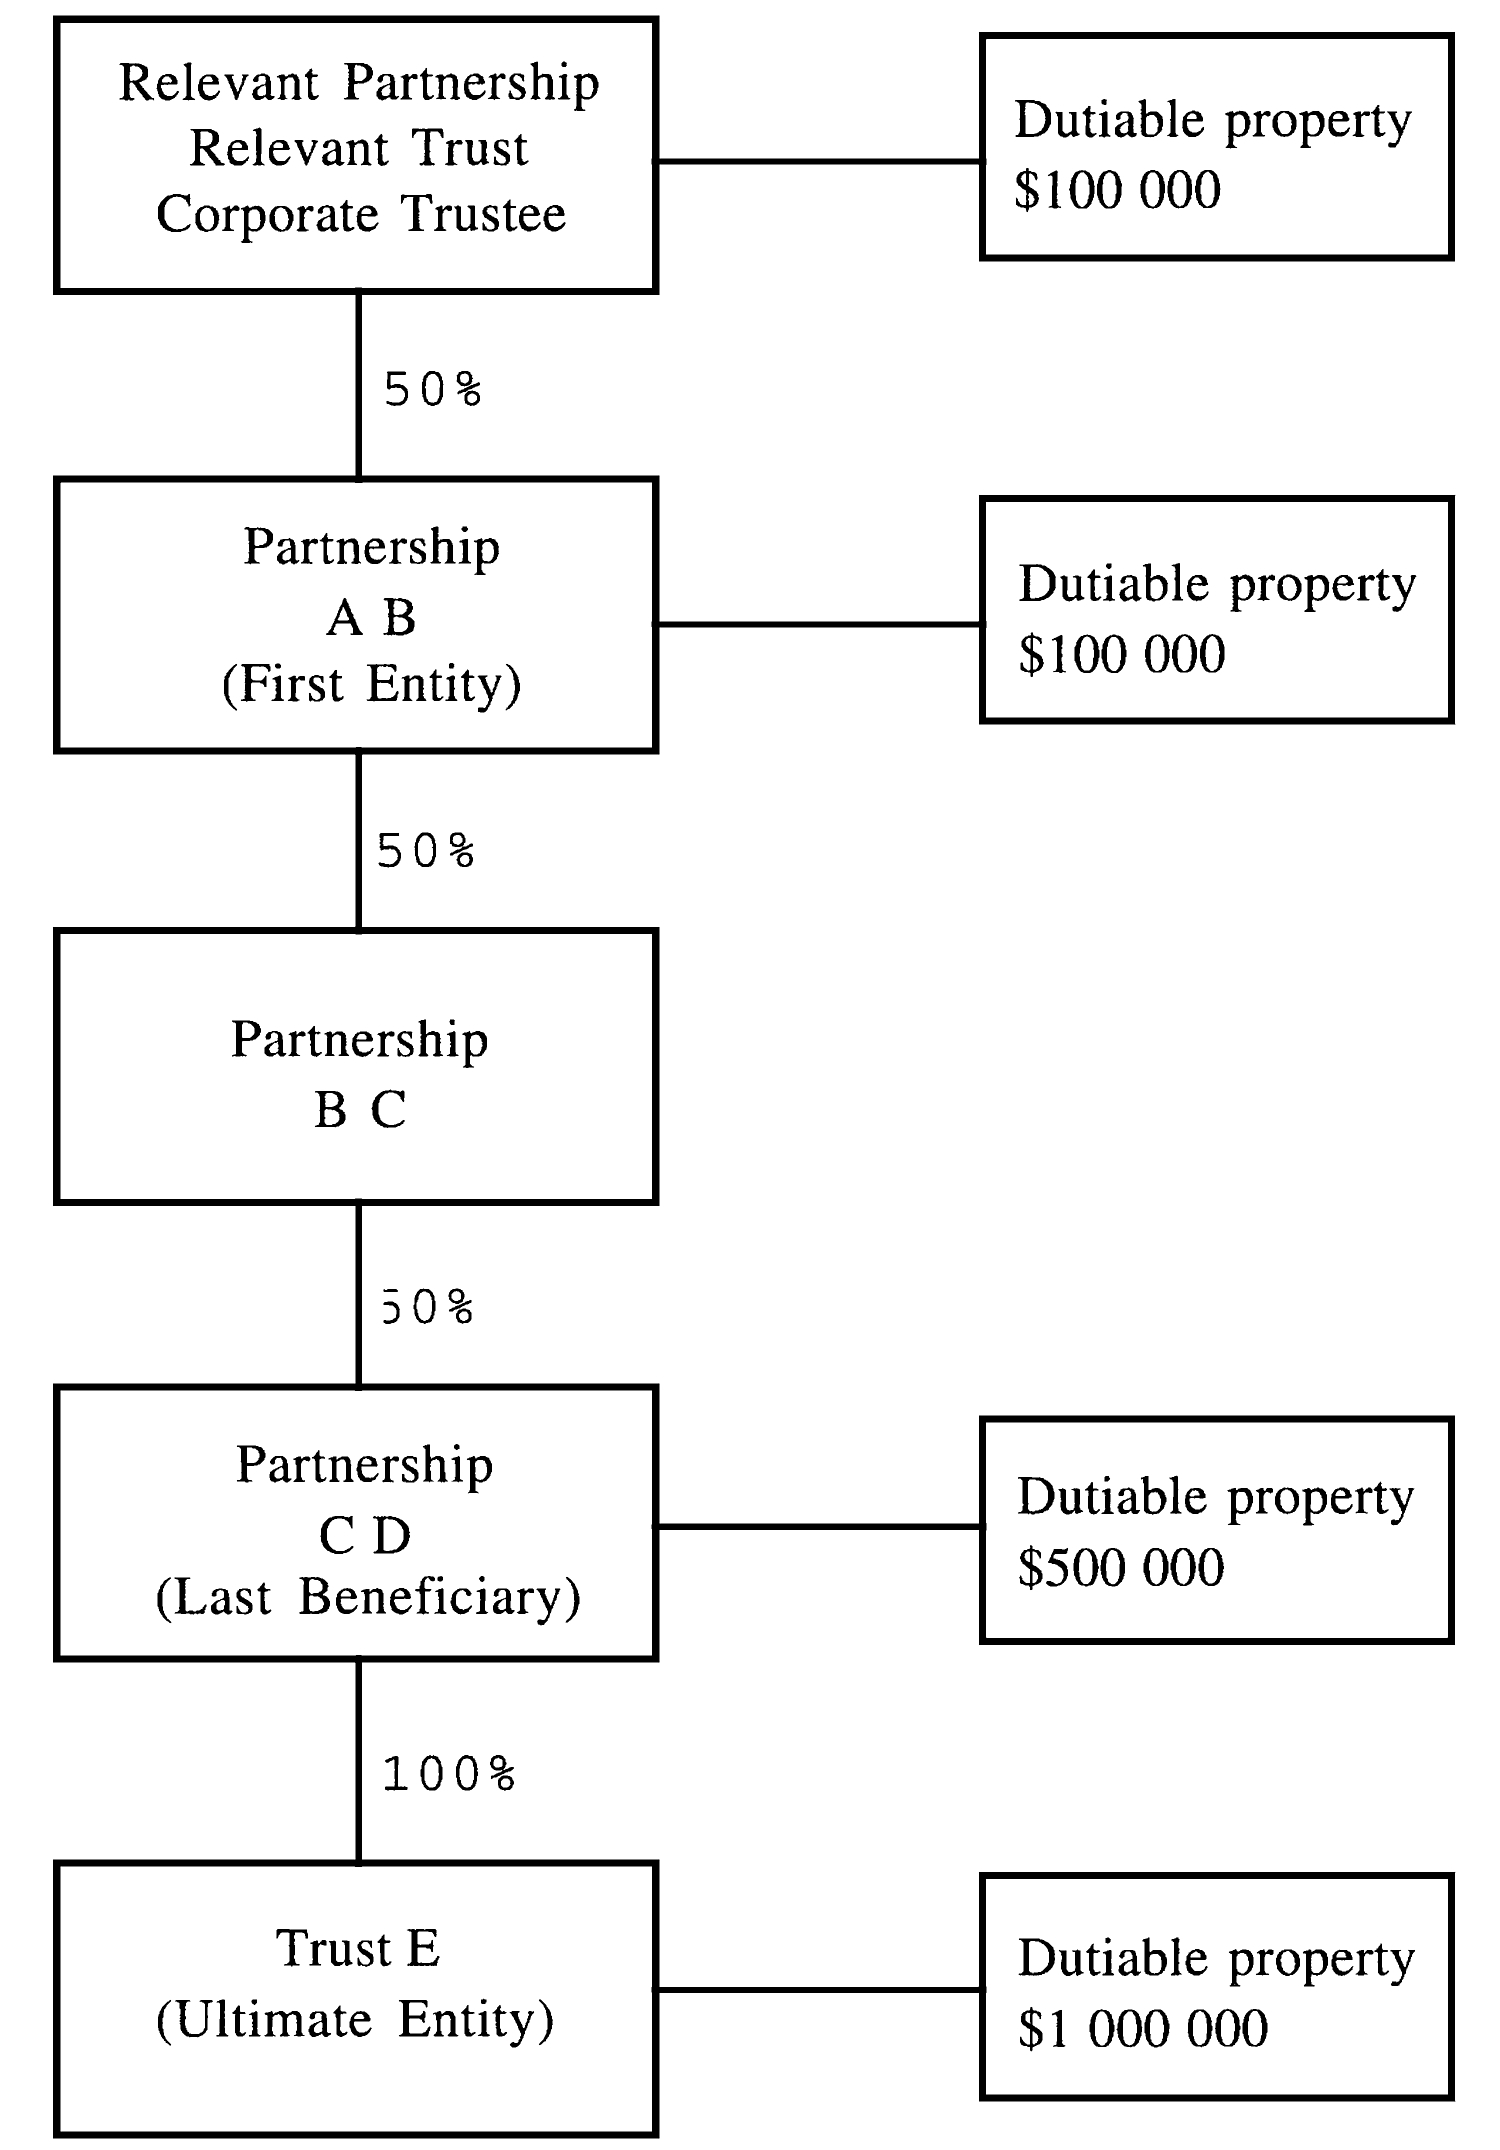 Example advisory legal and accounting fees dr acquisition related.